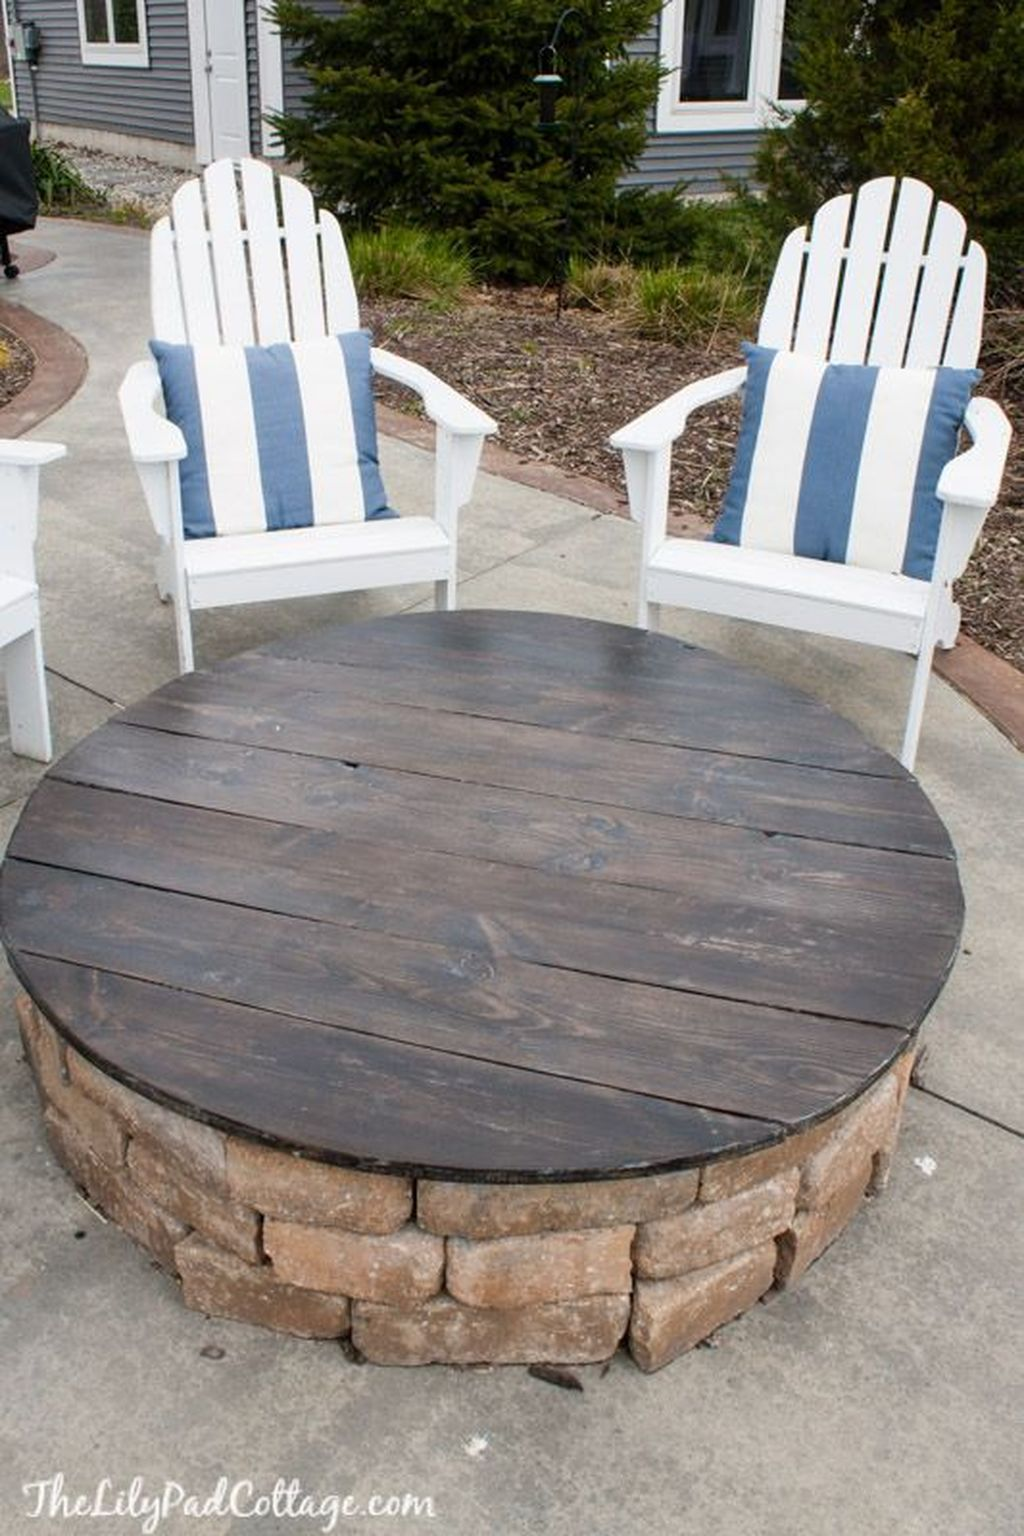 Photo of Affordable Diy Fire Pit Ideas For Bbq Backyard 35